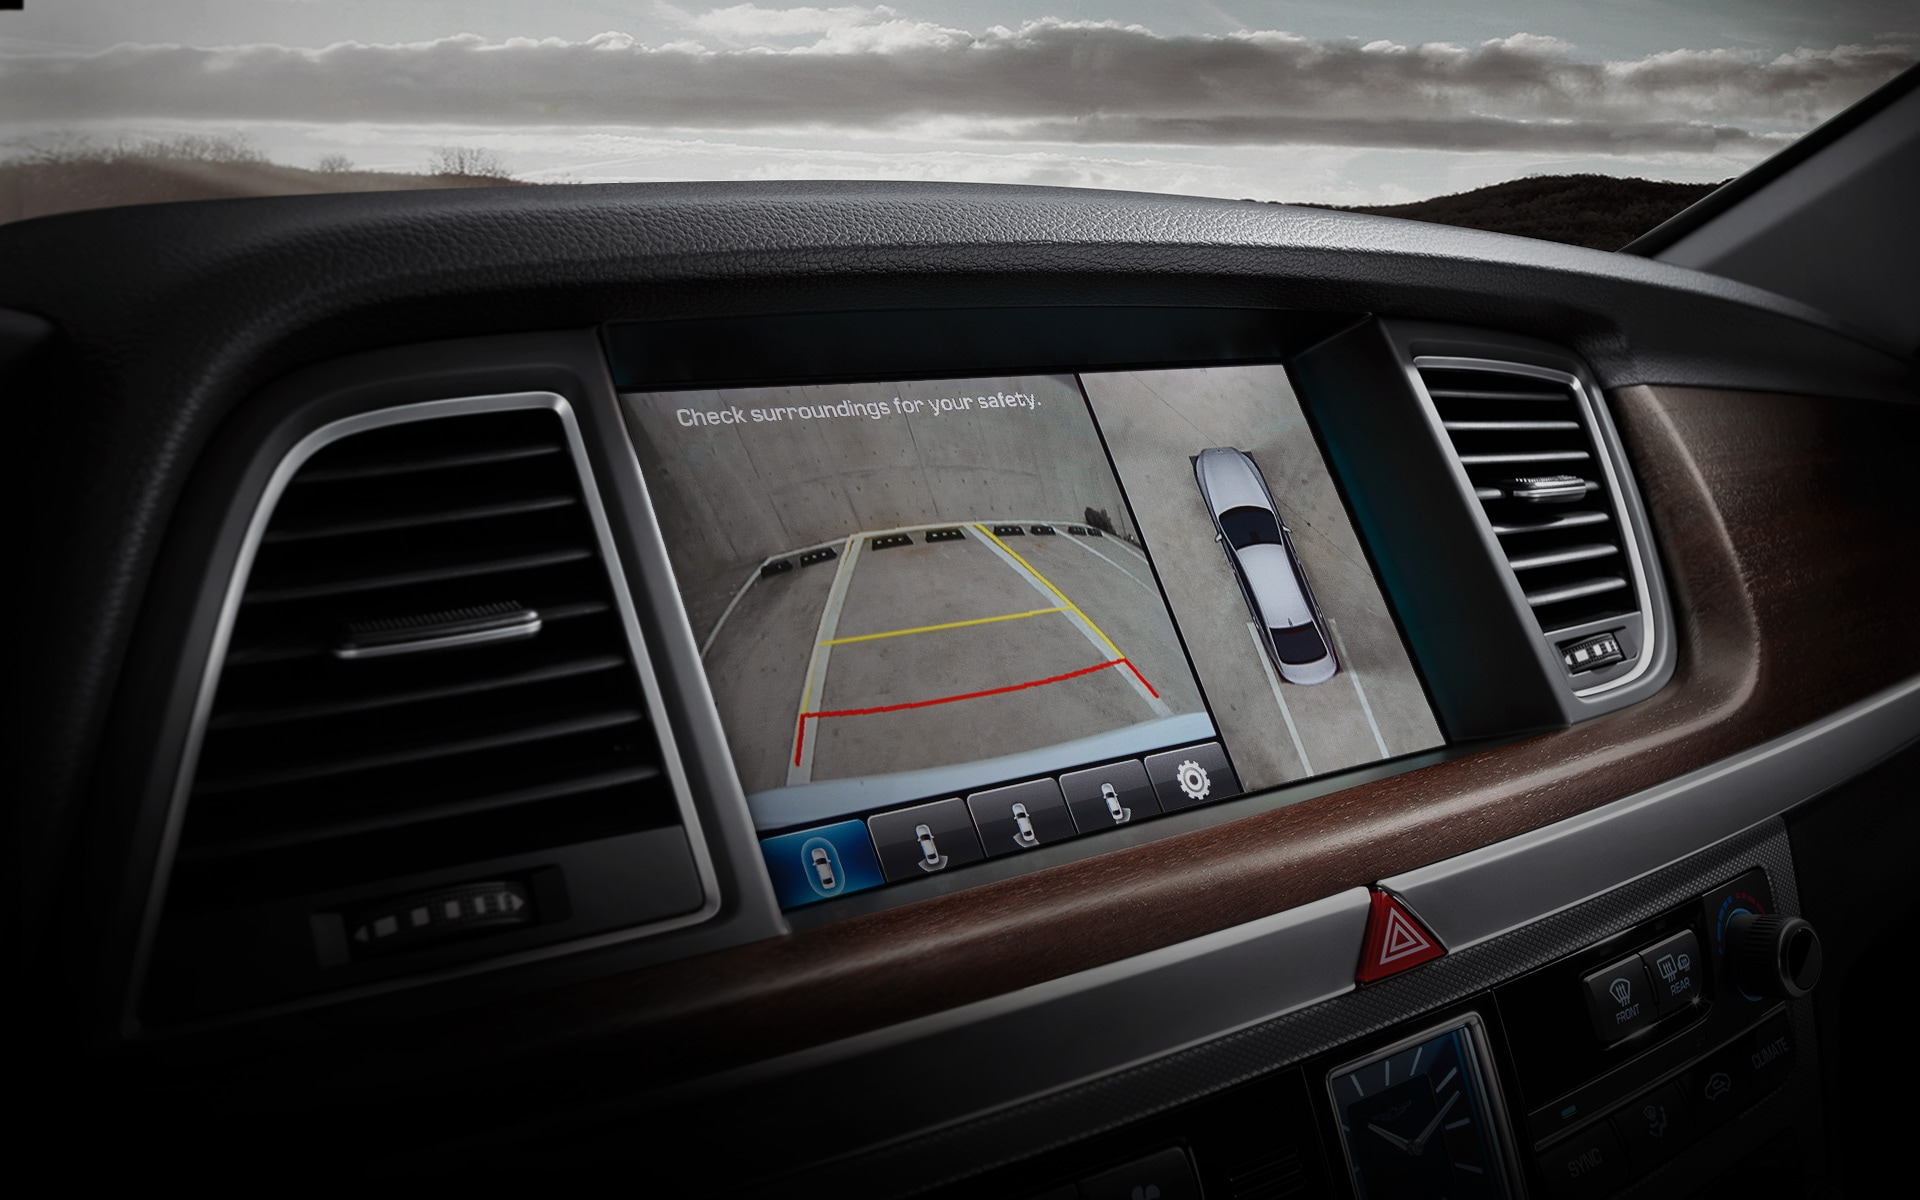 GENESIS G80 Innovation Features - Around View Monitoring (AVM) System